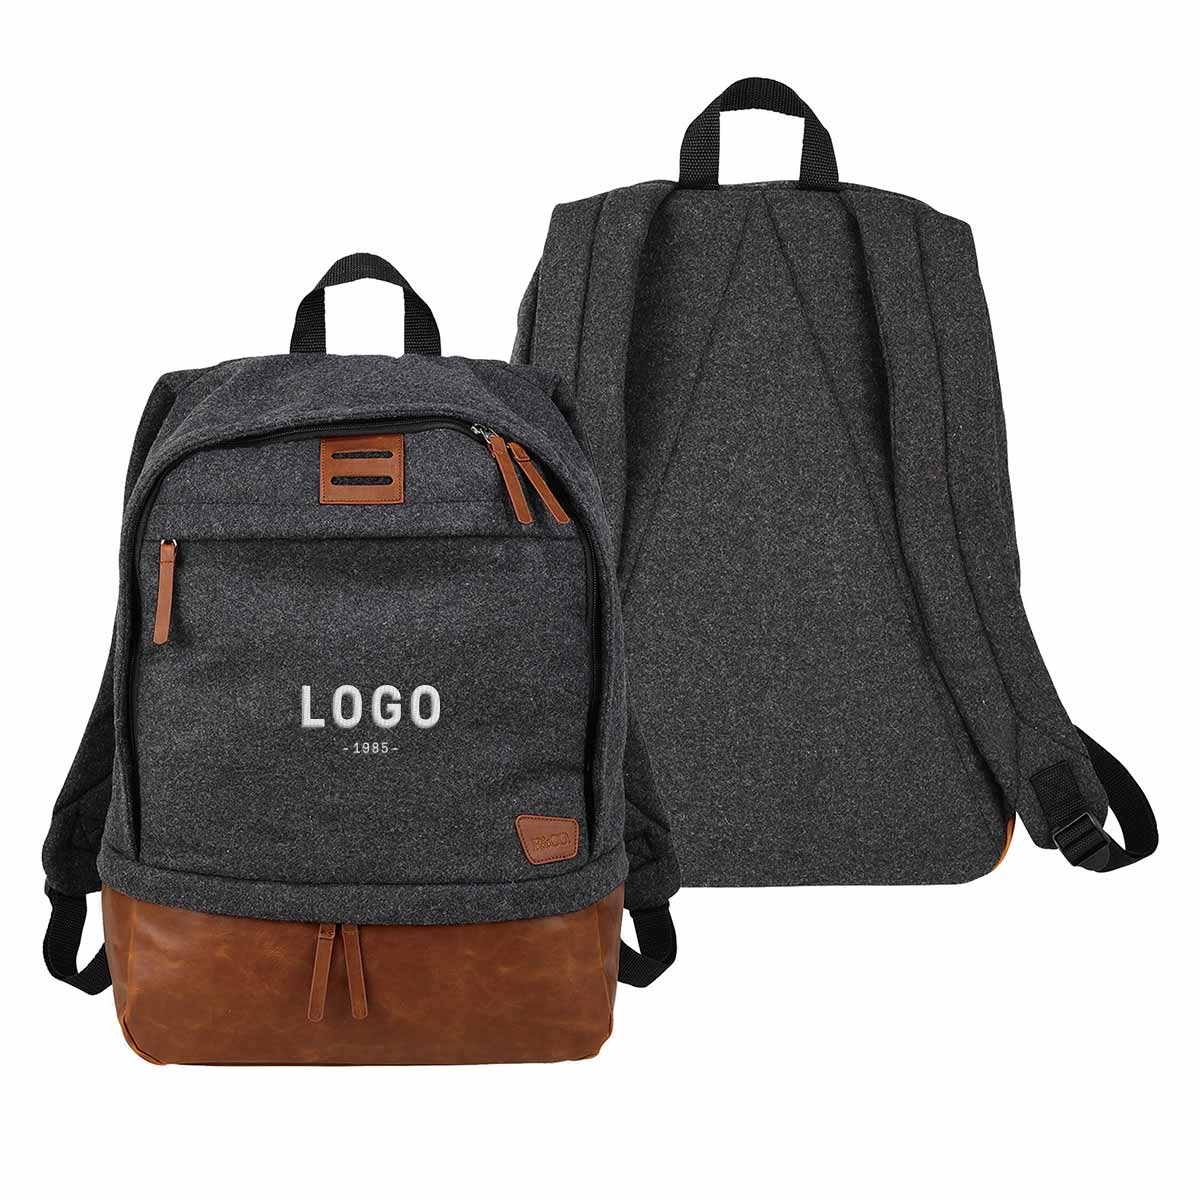 122722 terra wool backpack one location embroidery up to 8k stitches